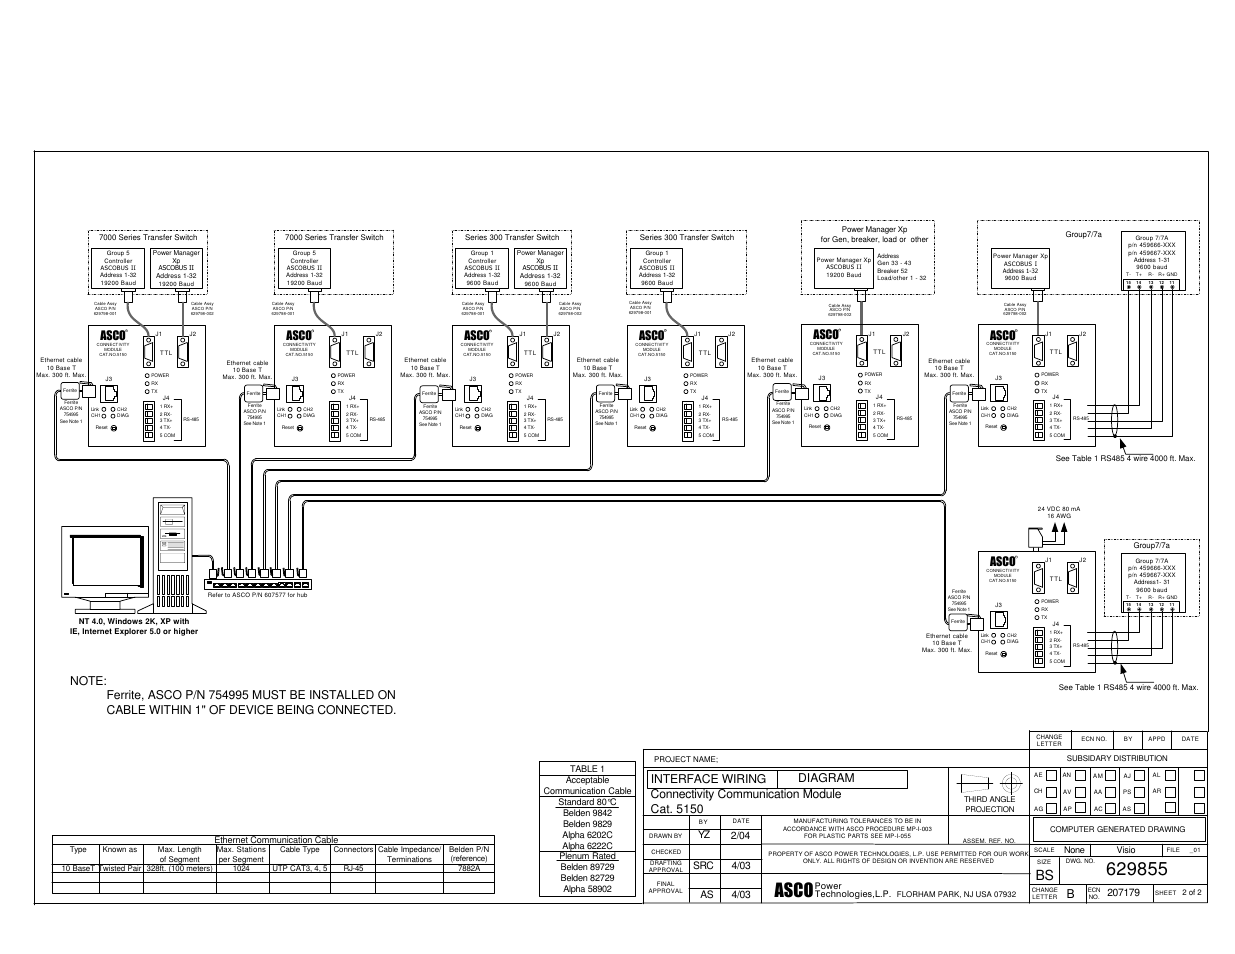 Interface Wiring Diagram  Connectivity Communication